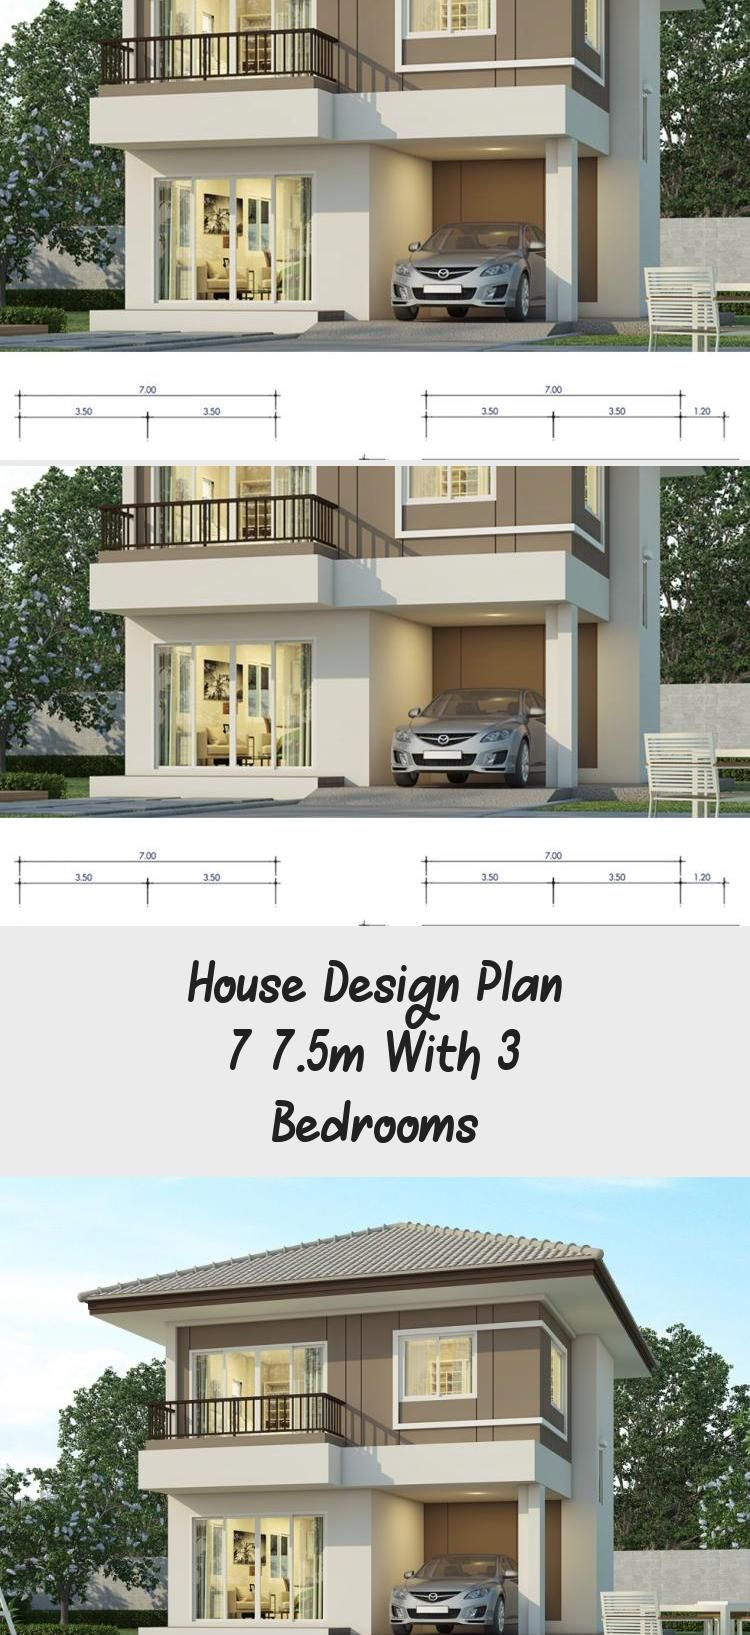 House Design Plan 7x7 5m With 3 Bedrooms Home Design With Plansearch Ranchhousedesign Tropicalhousedesig Home Design Plans House Design Ranch House Designs